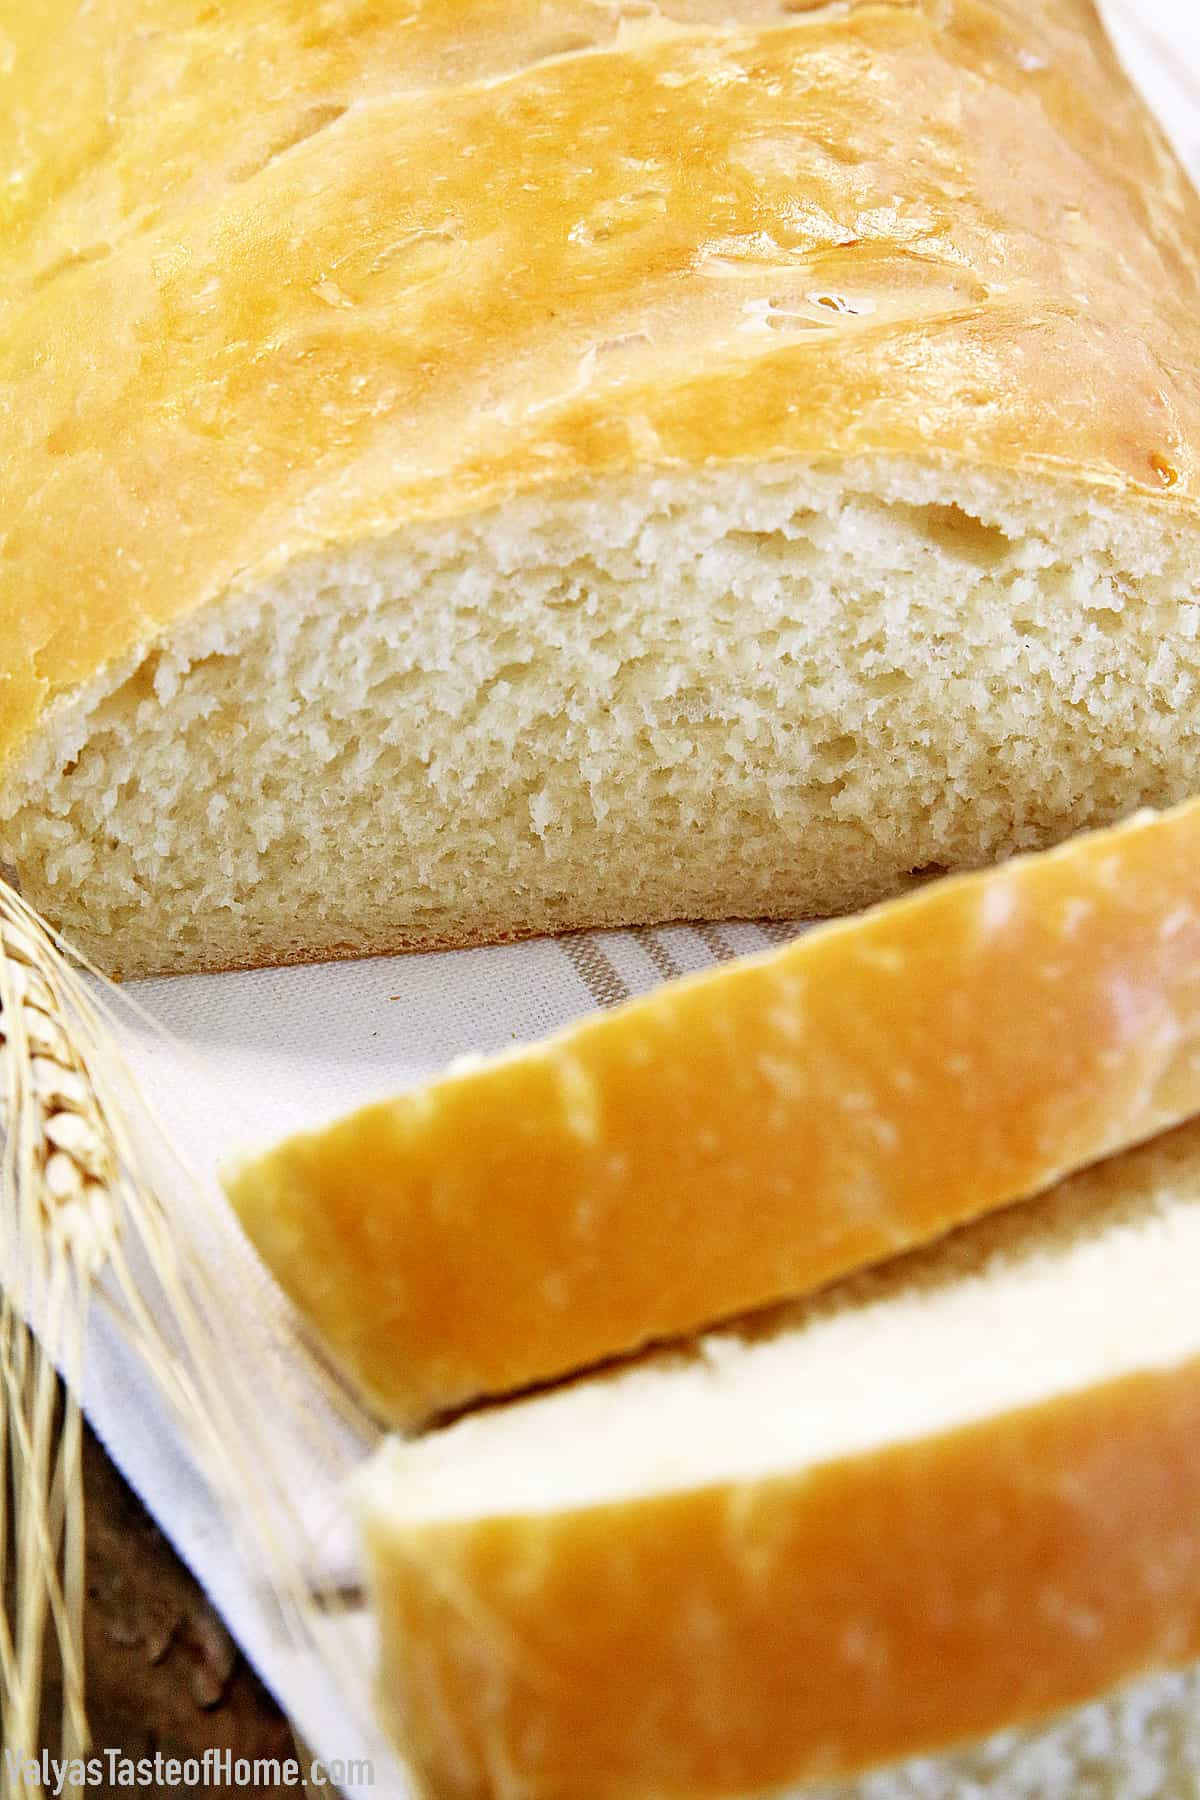 This Homemade French Bread is an all-time family favorite at my house, no matter how you slice it! And when things are either homemade or made with homegrown ingredients, it's bound to be a winner. #homemadefrenchbread #frenchbread #easyandtasty #familyfavoritebread